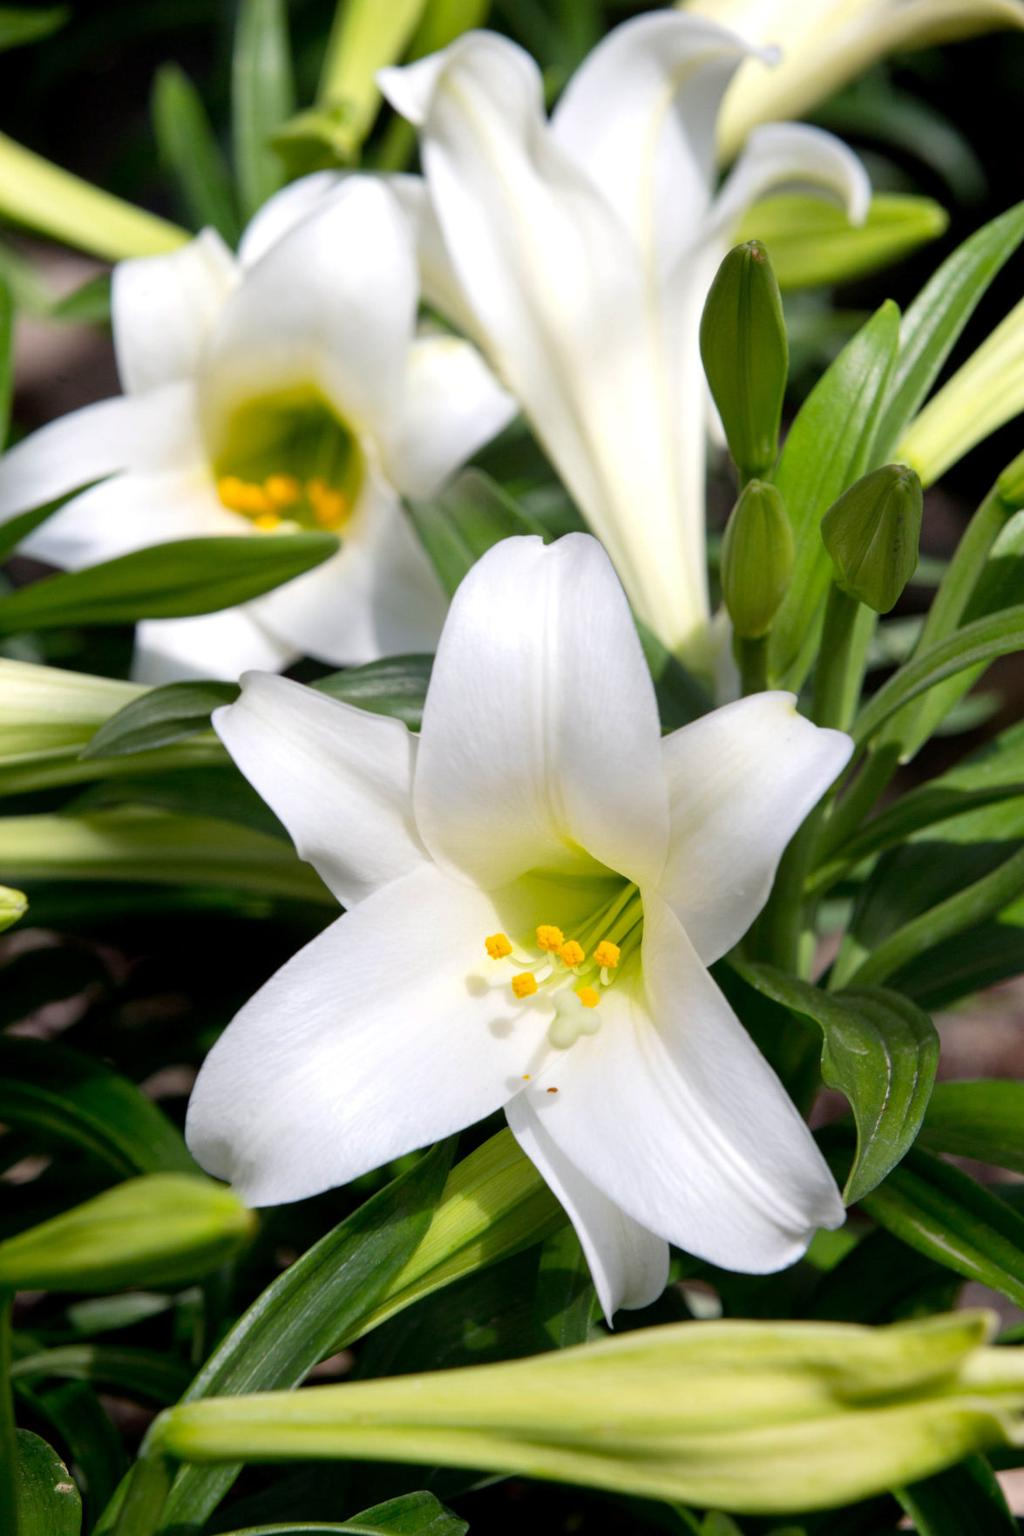 From Lilies To Lambs Easter Symbols Hold Special